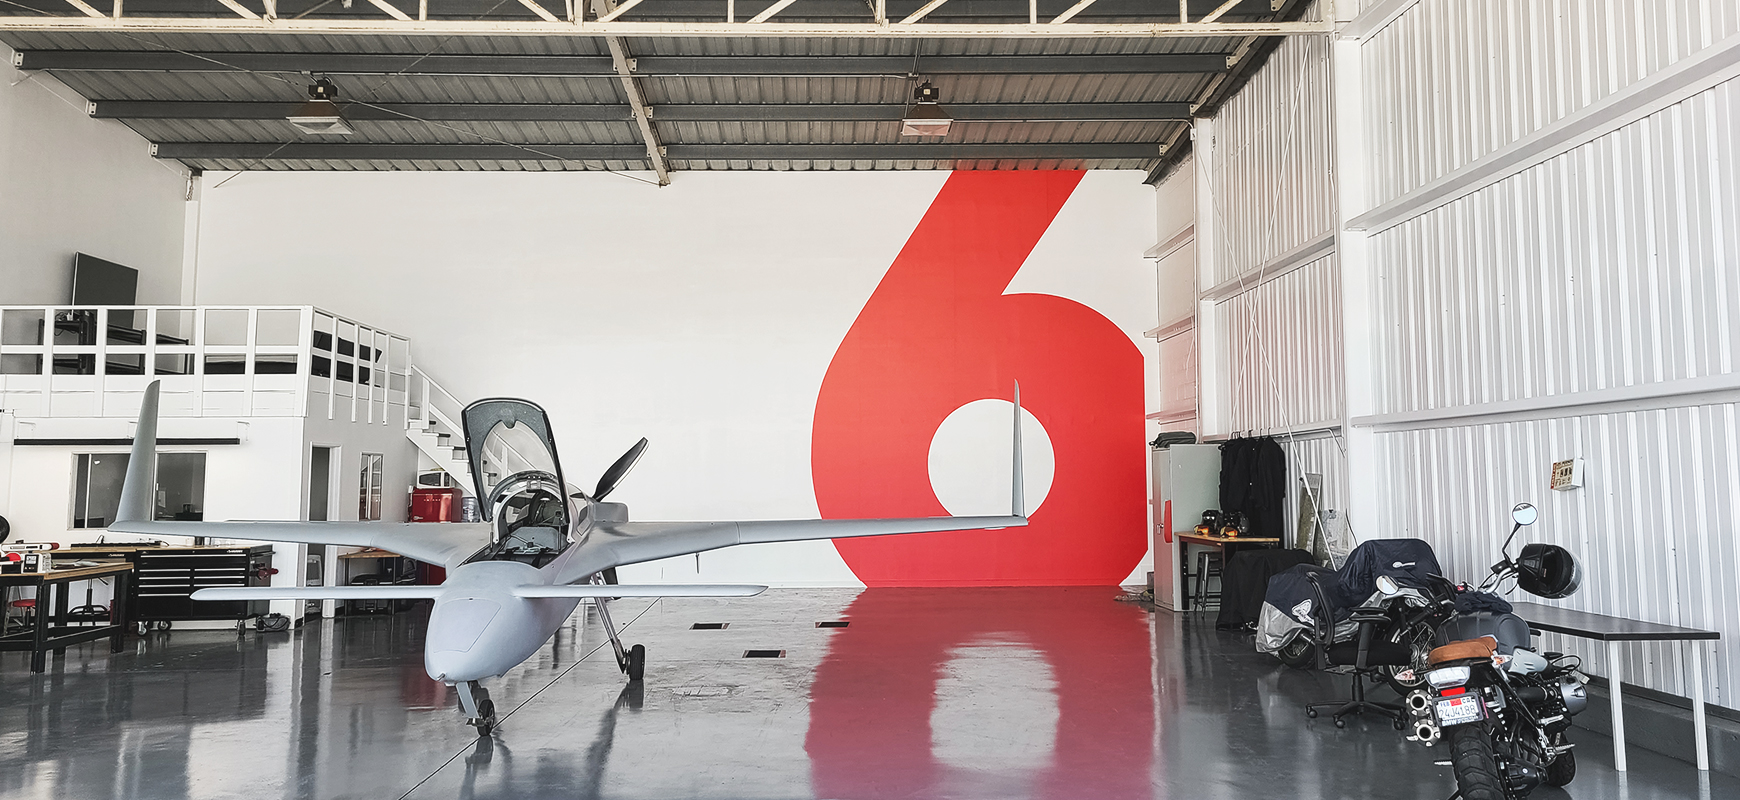 Airplane Hangar vinyl decal in red displaying the number six made of opaque vinyl